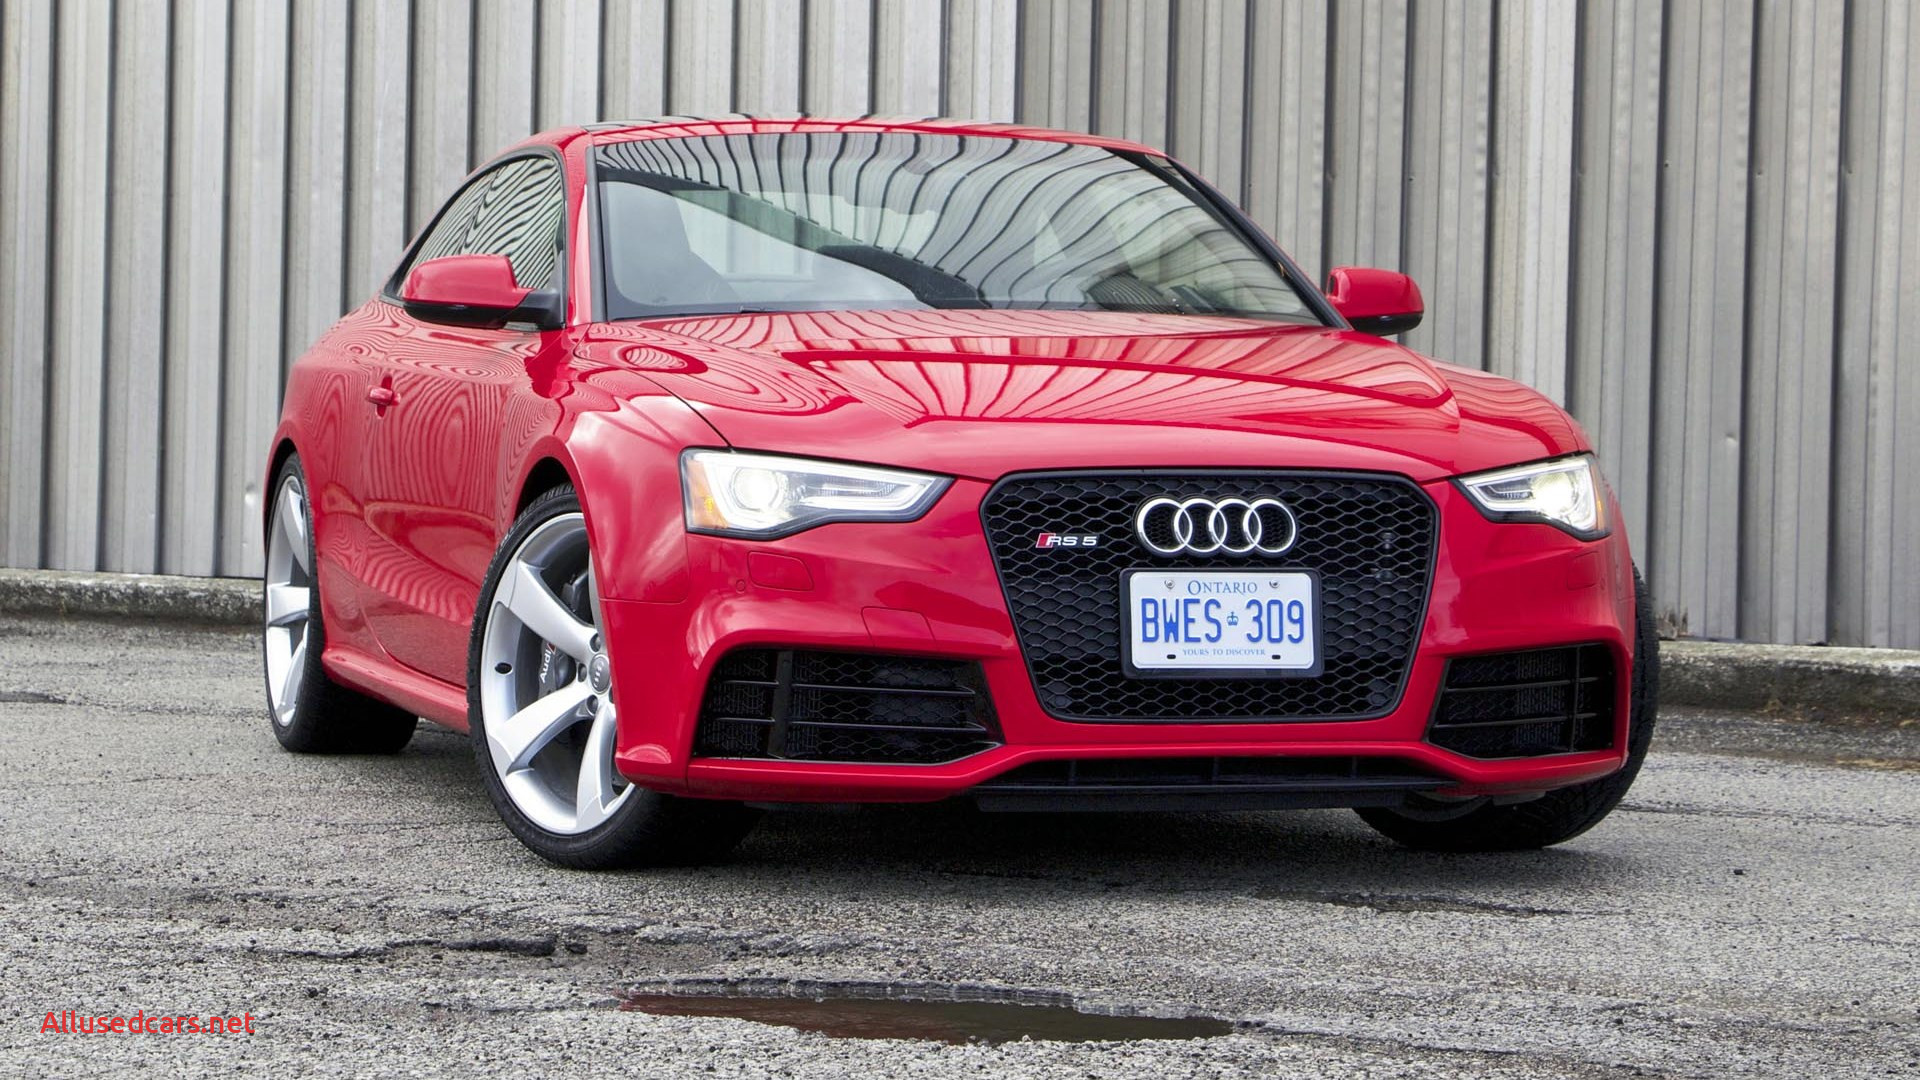 Audi A5 2013 Inspirational Used Audi Rs5 Review 2013 2015